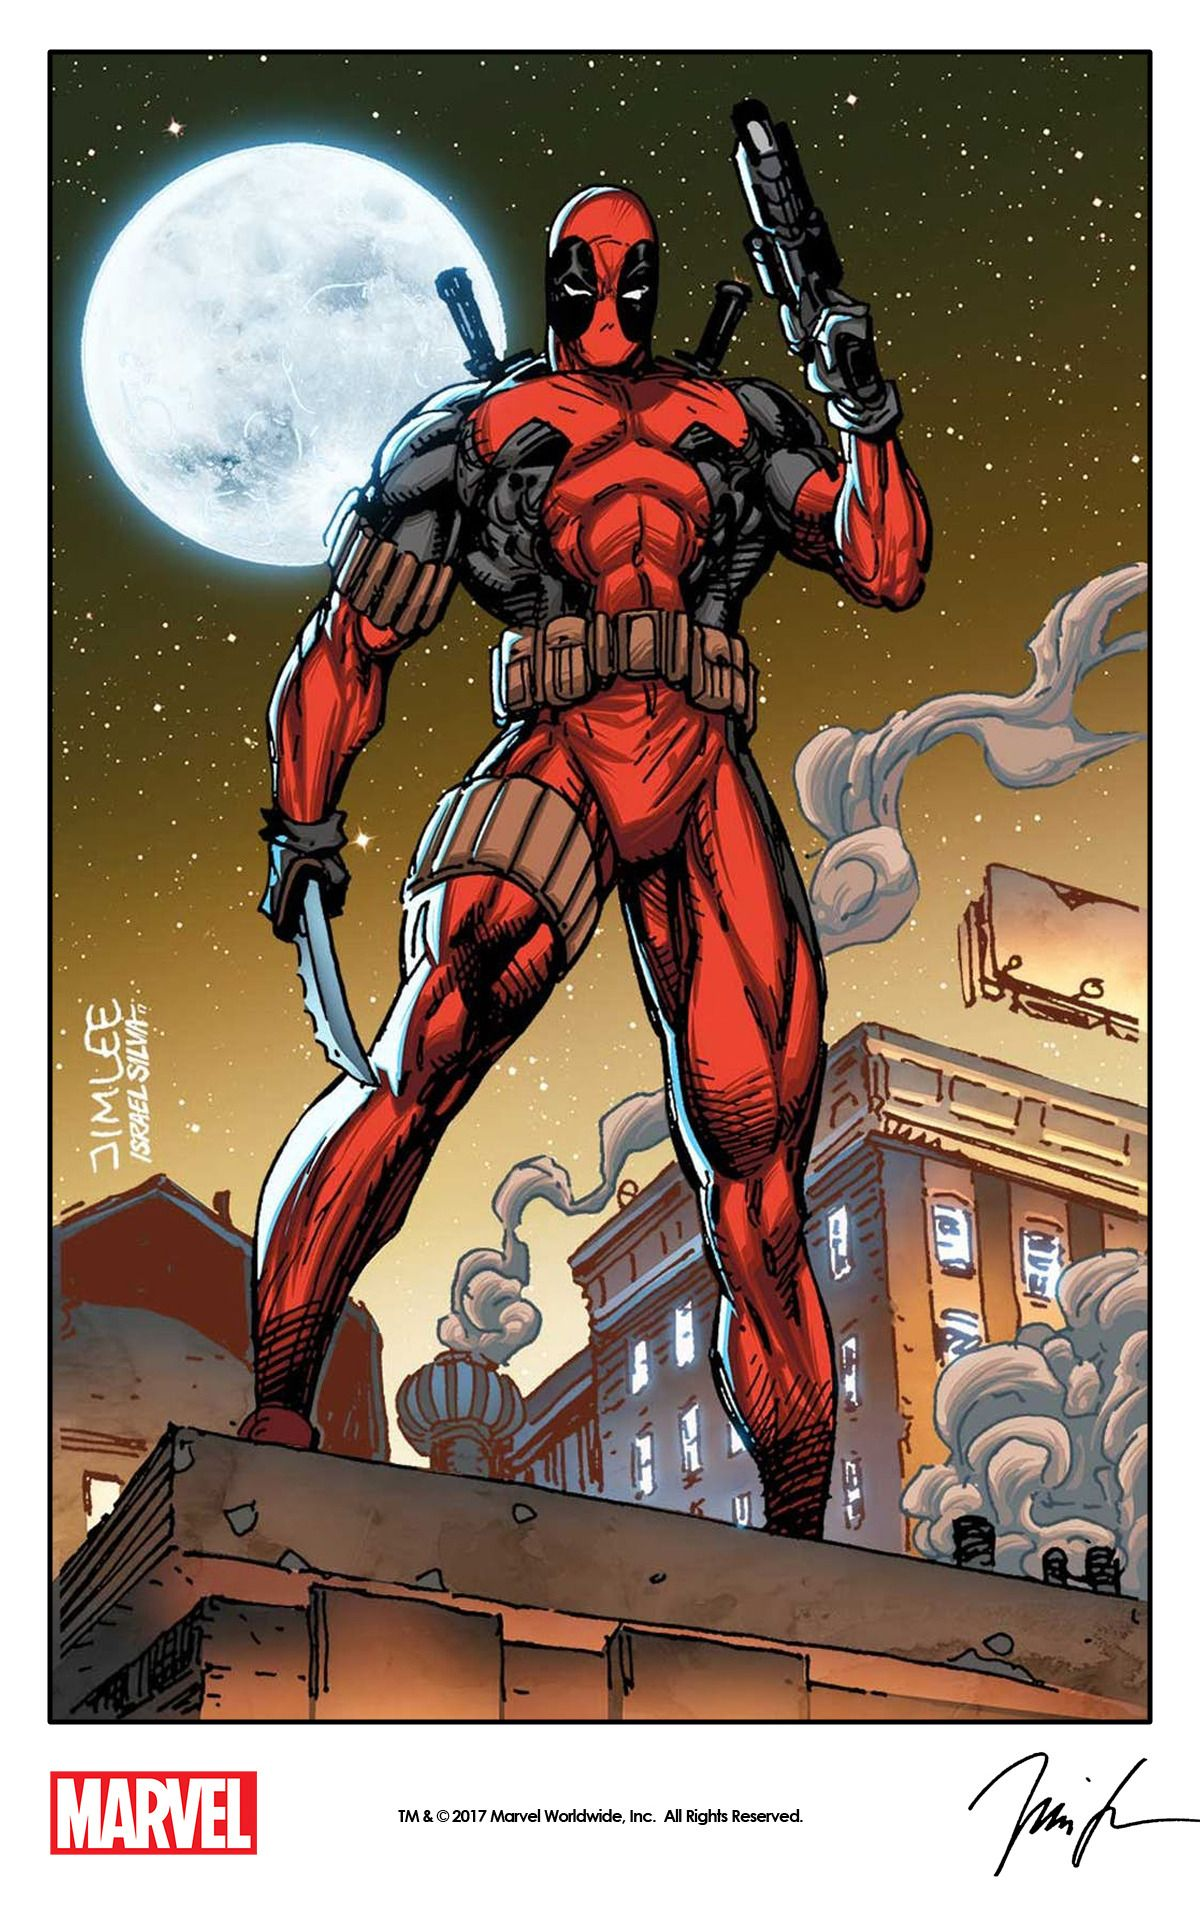 Deapool By Jim Lee From Impel S X Men Trading Card Series 1992 Remastered With Digital Colors By Israel Silva A Deadpool Comic Jim Lee Marvel Comics Deadpool